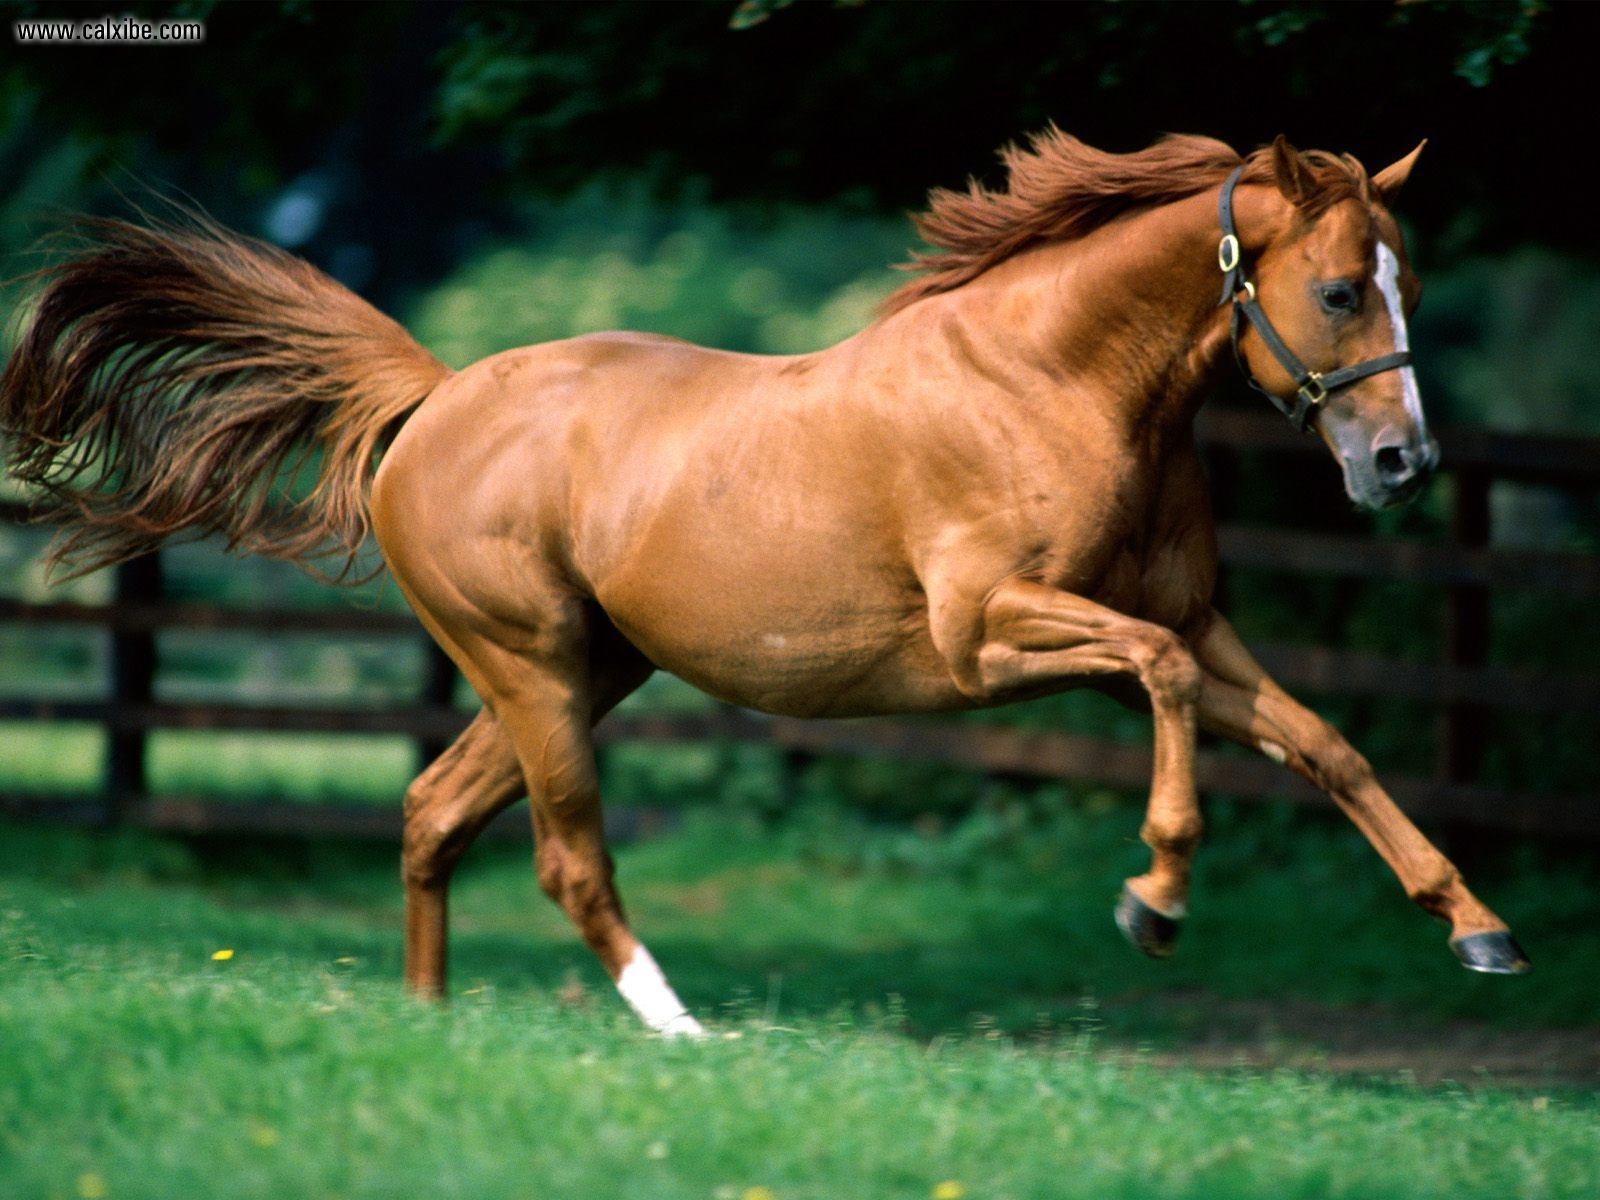 Animals Zoo Park Horse Wallpapers Photos Pictures 1600x1200